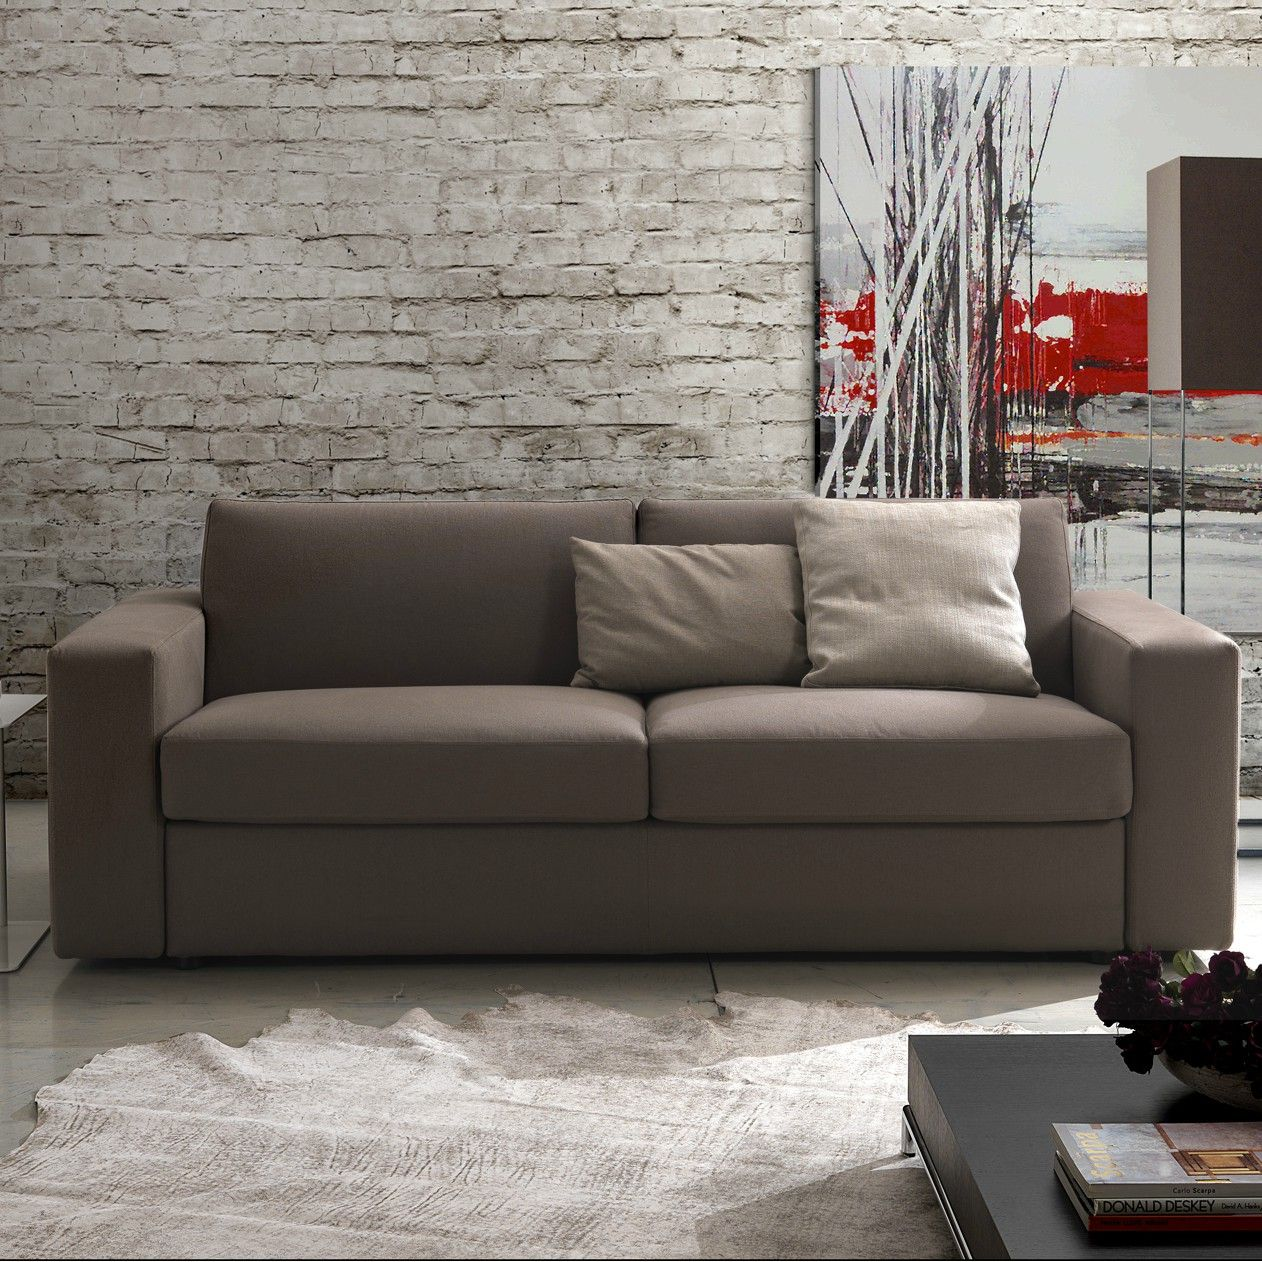 Best True King Size Sofa Bed Sofa Modern Couch Home Furnishings 400 x 300